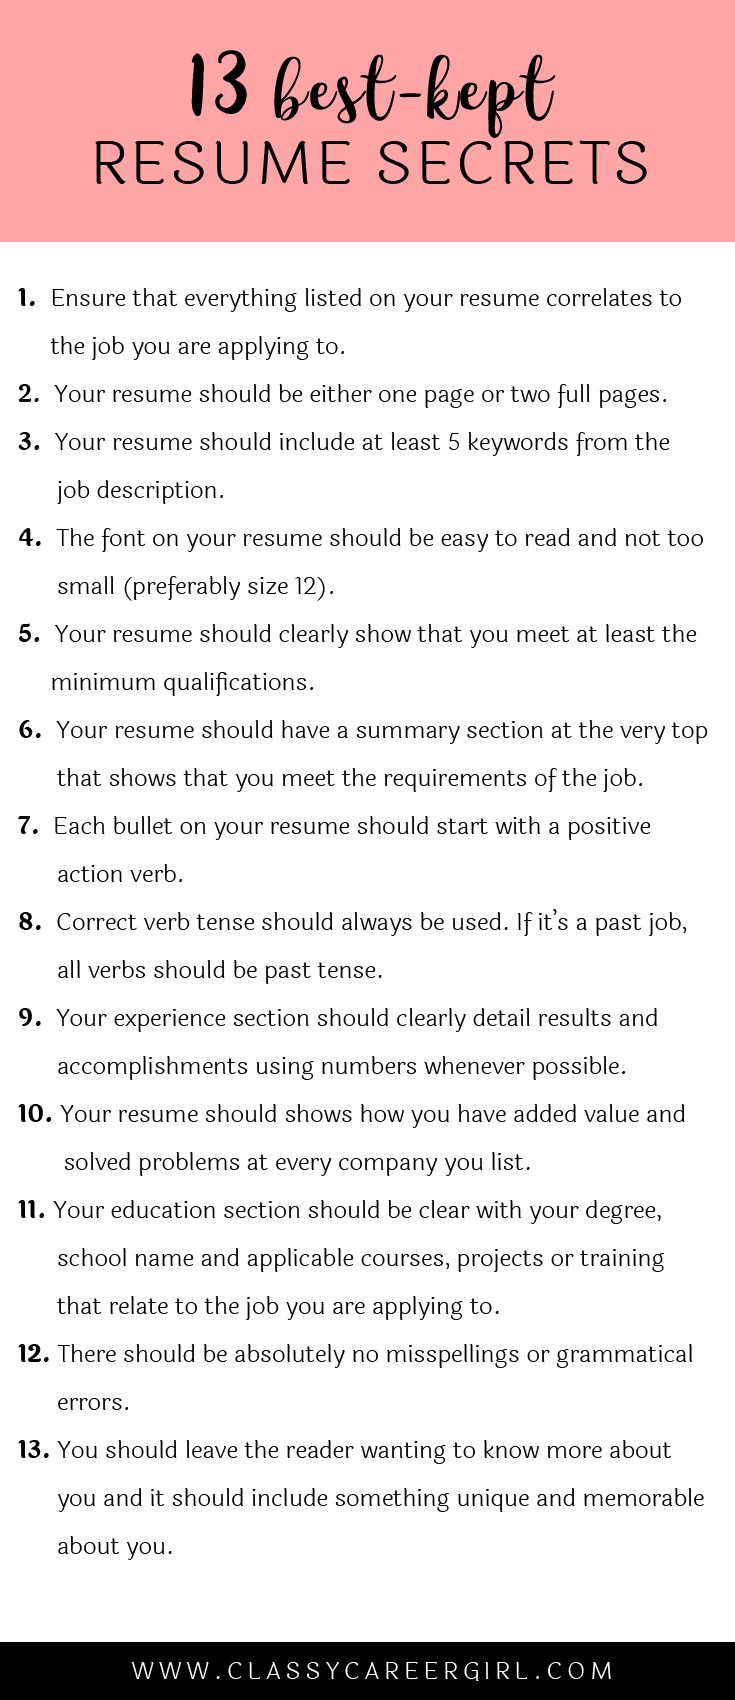 Opposenewapstandardsus  Nice  Ideas About Resume On Pinterest  Cv Format Resume Cv And  With Handsome Some Hiring Managers Will Toss Your Resume Out If You Dont Know These  With Comely Resume Examples For High School Student Also Food Resume In Addition Resume Templates Samples And What Do You Include In A Resume As Well As Lifeguard Resume Description Additionally Resume Sample For Customer Service From Pinterestcom With Opposenewapstandardsus  Handsome  Ideas About Resume On Pinterest  Cv Format Resume Cv And  With Comely Some Hiring Managers Will Toss Your Resume Out If You Dont Know These  And Nice Resume Examples For High School Student Also Food Resume In Addition Resume Templates Samples From Pinterestcom